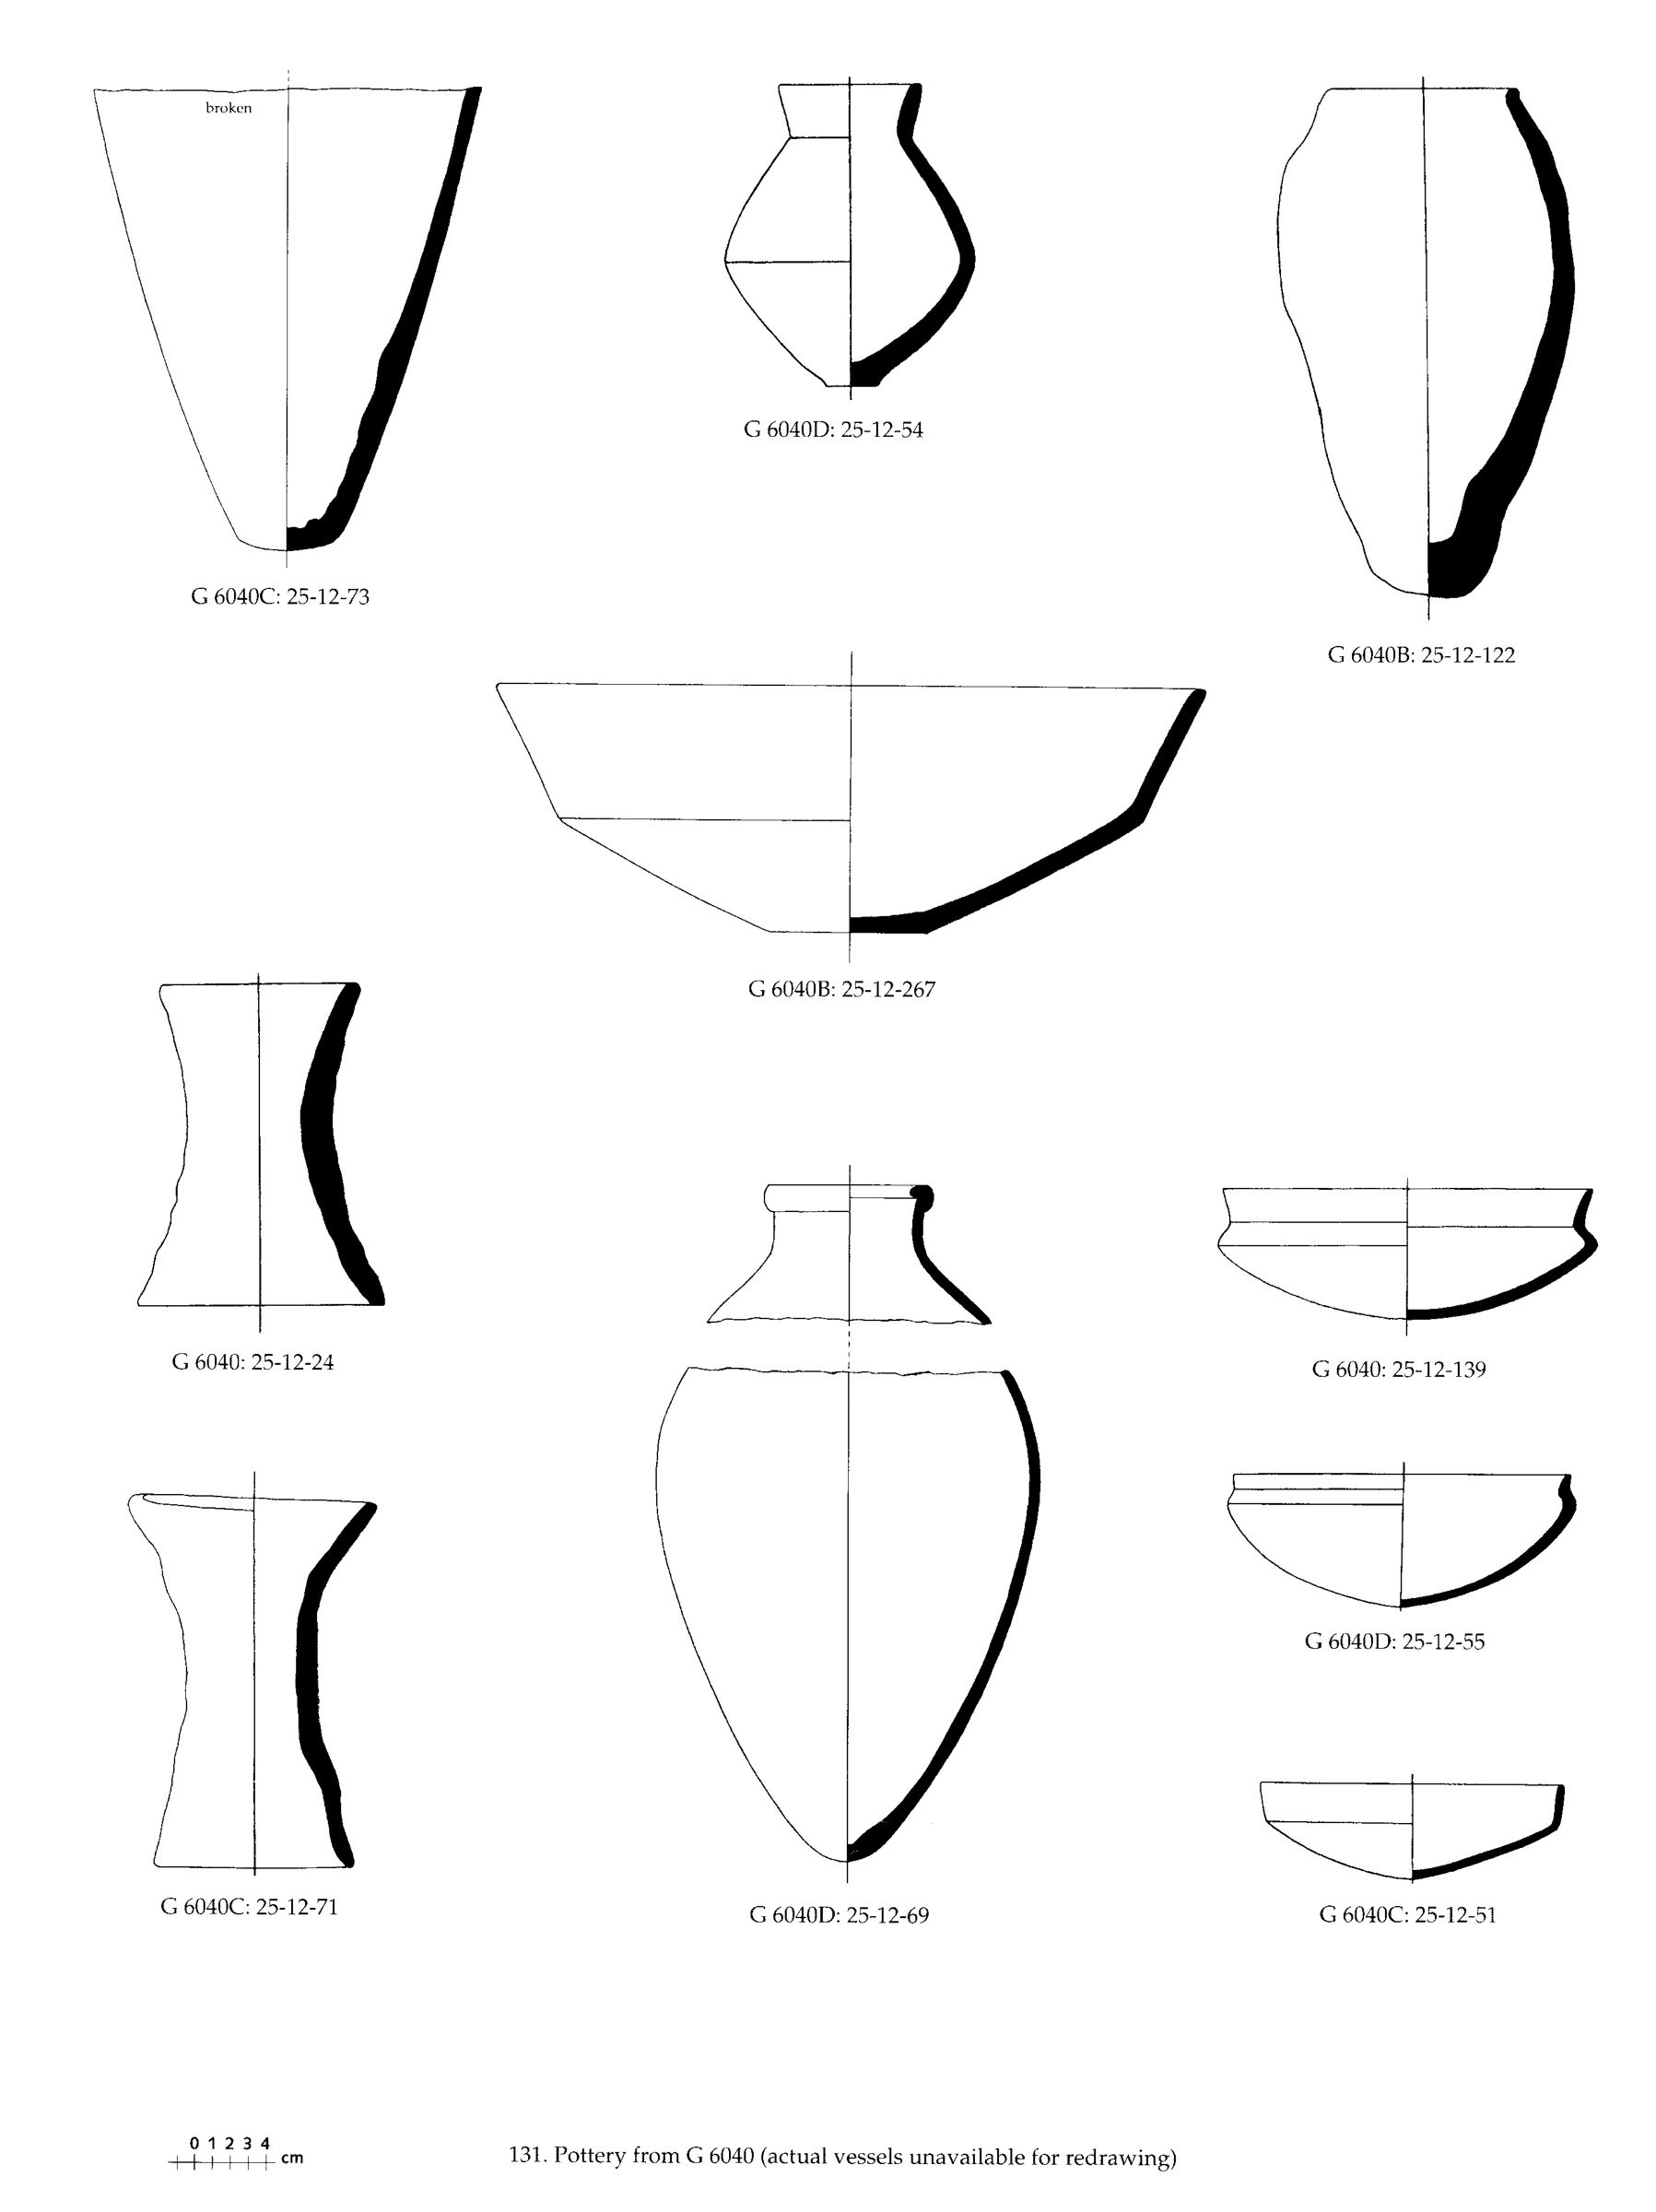 Drawings: Pottery from G 6040 and G 6051